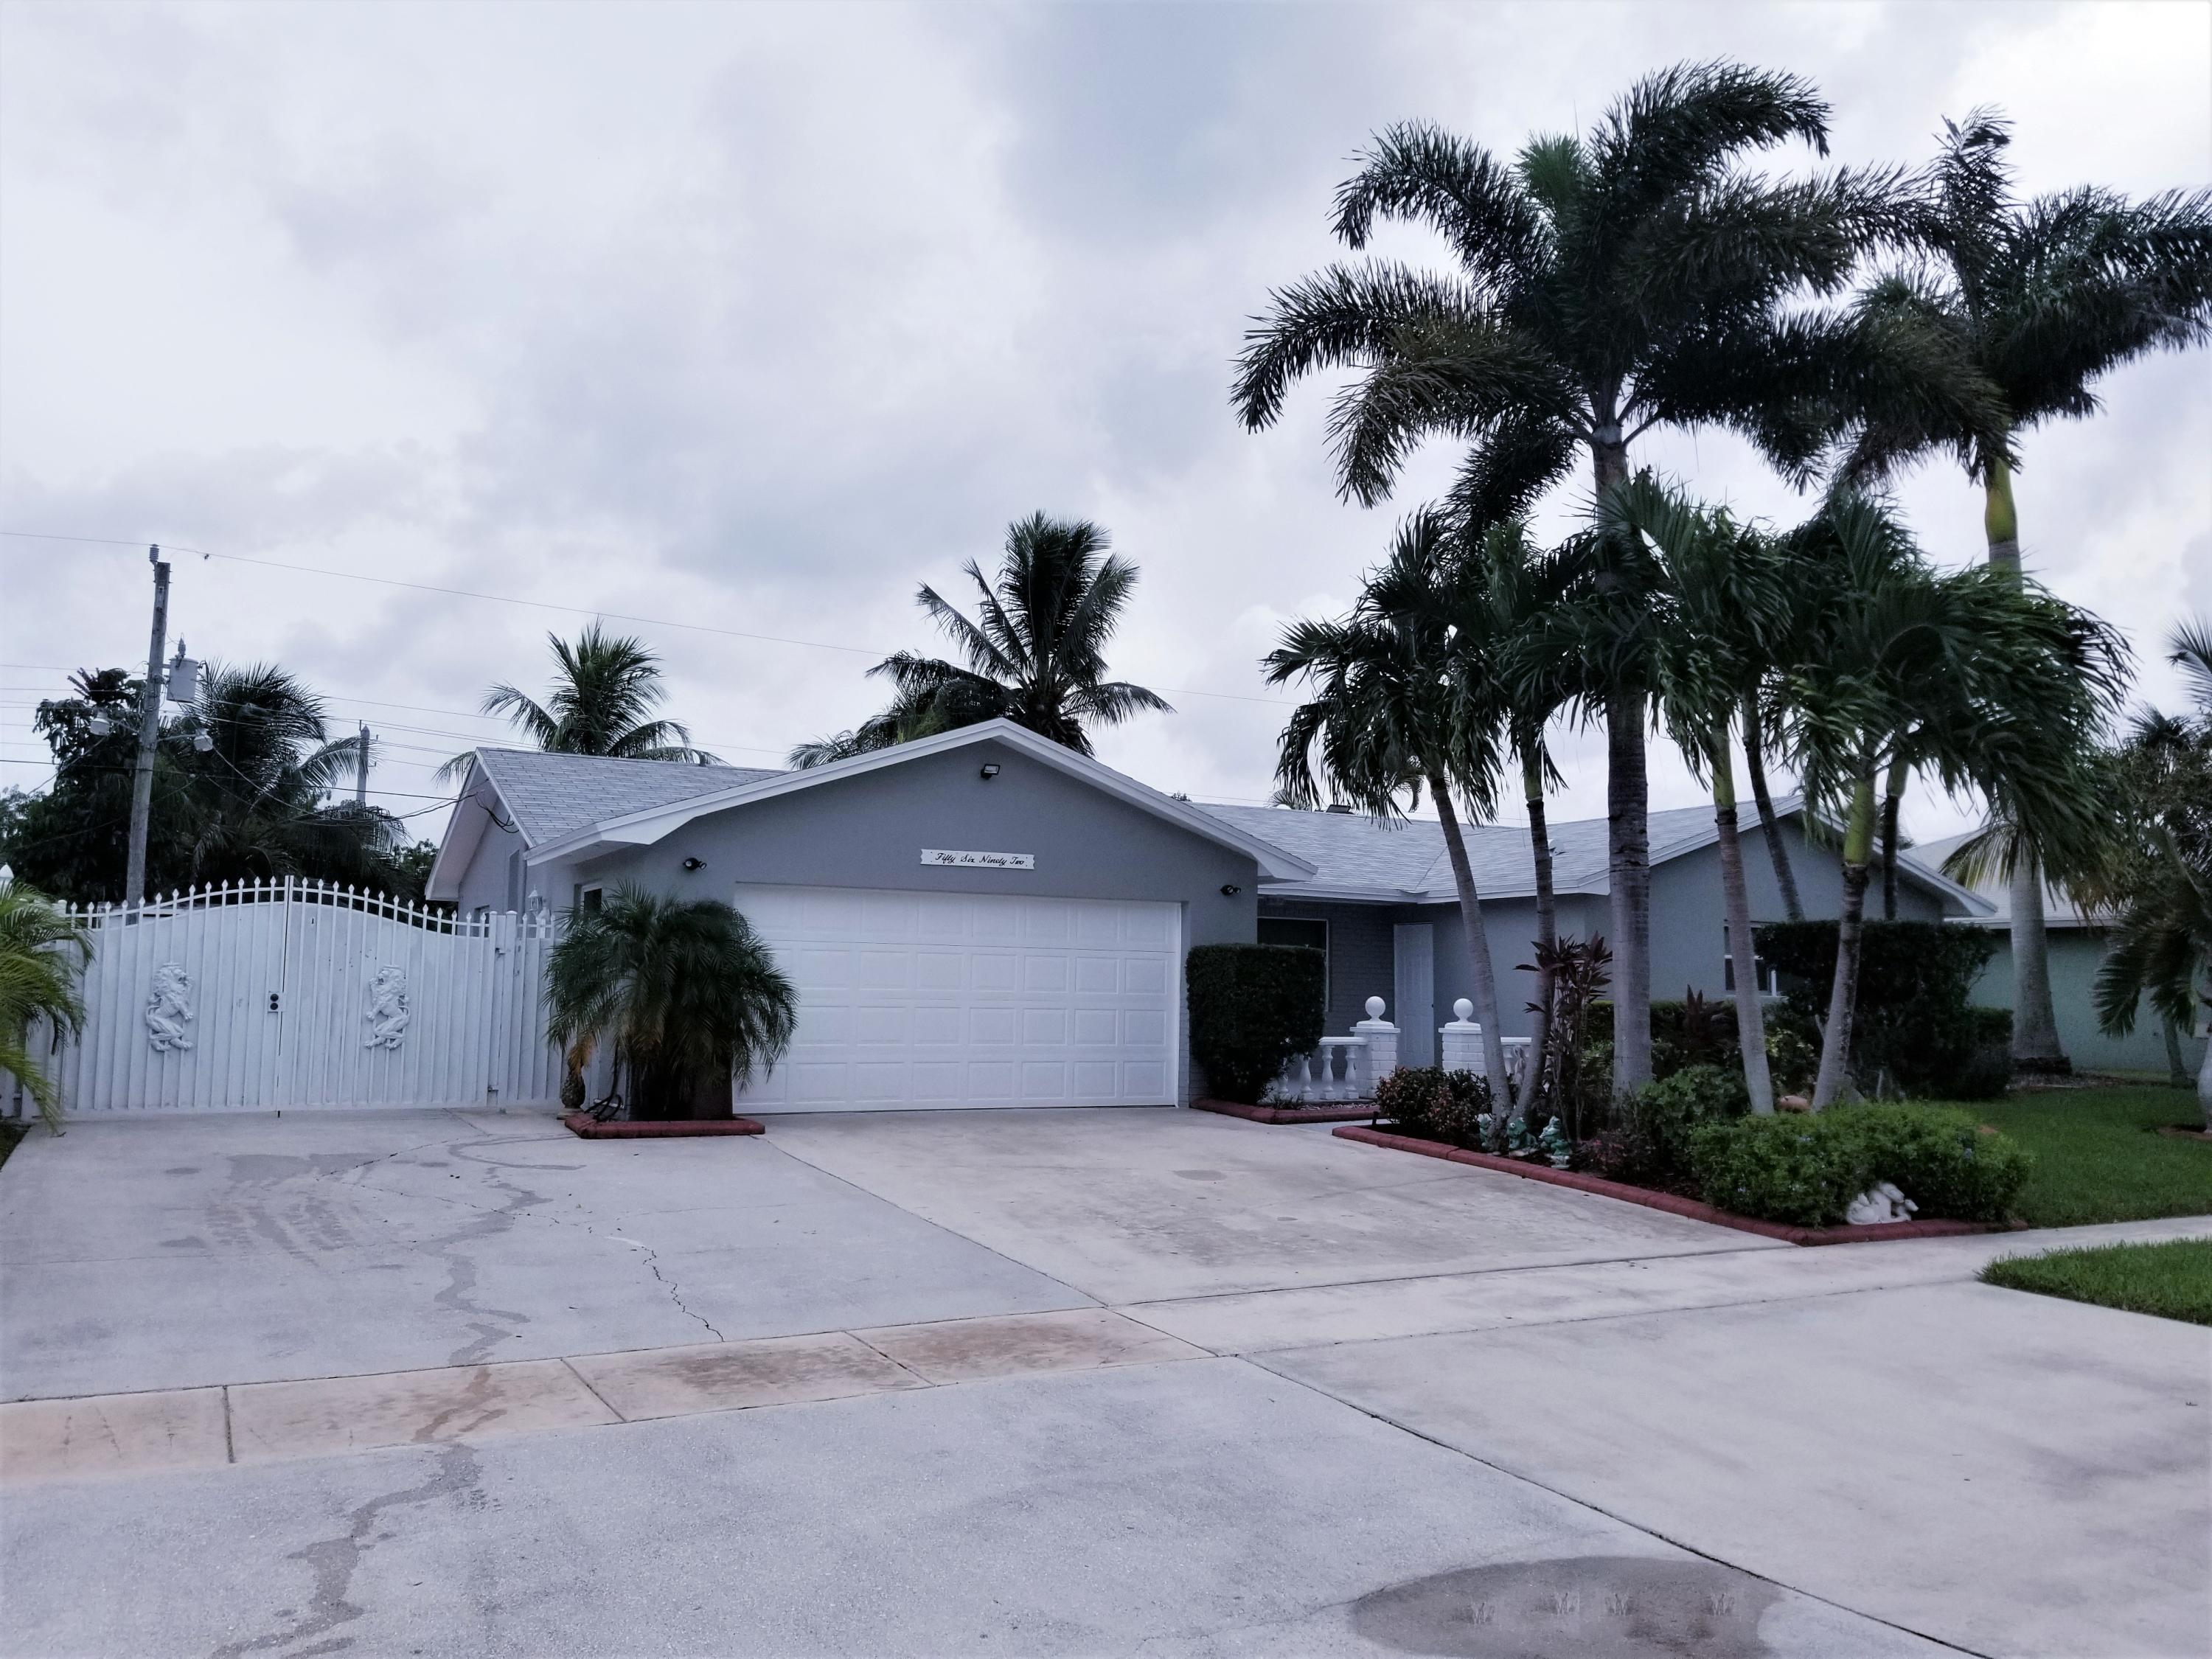 5692  Orchard Way  For Sale 10738556, FL